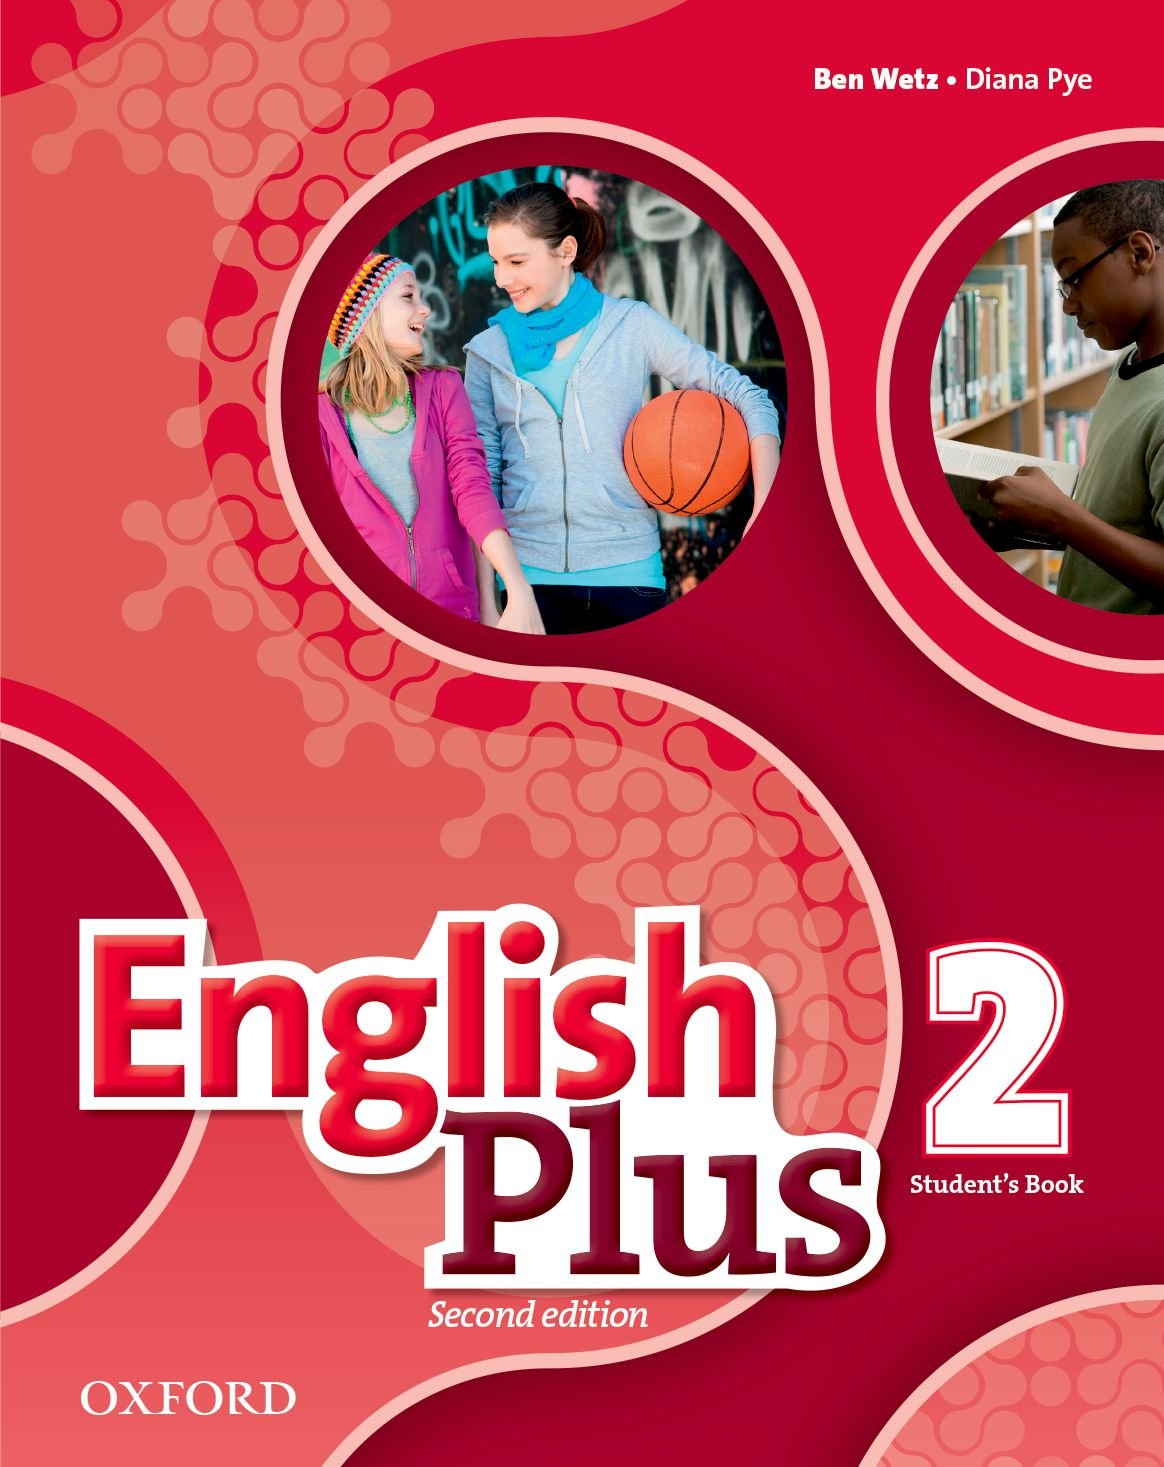 English plus 2 student's book audio cd ebook pdf online free download.